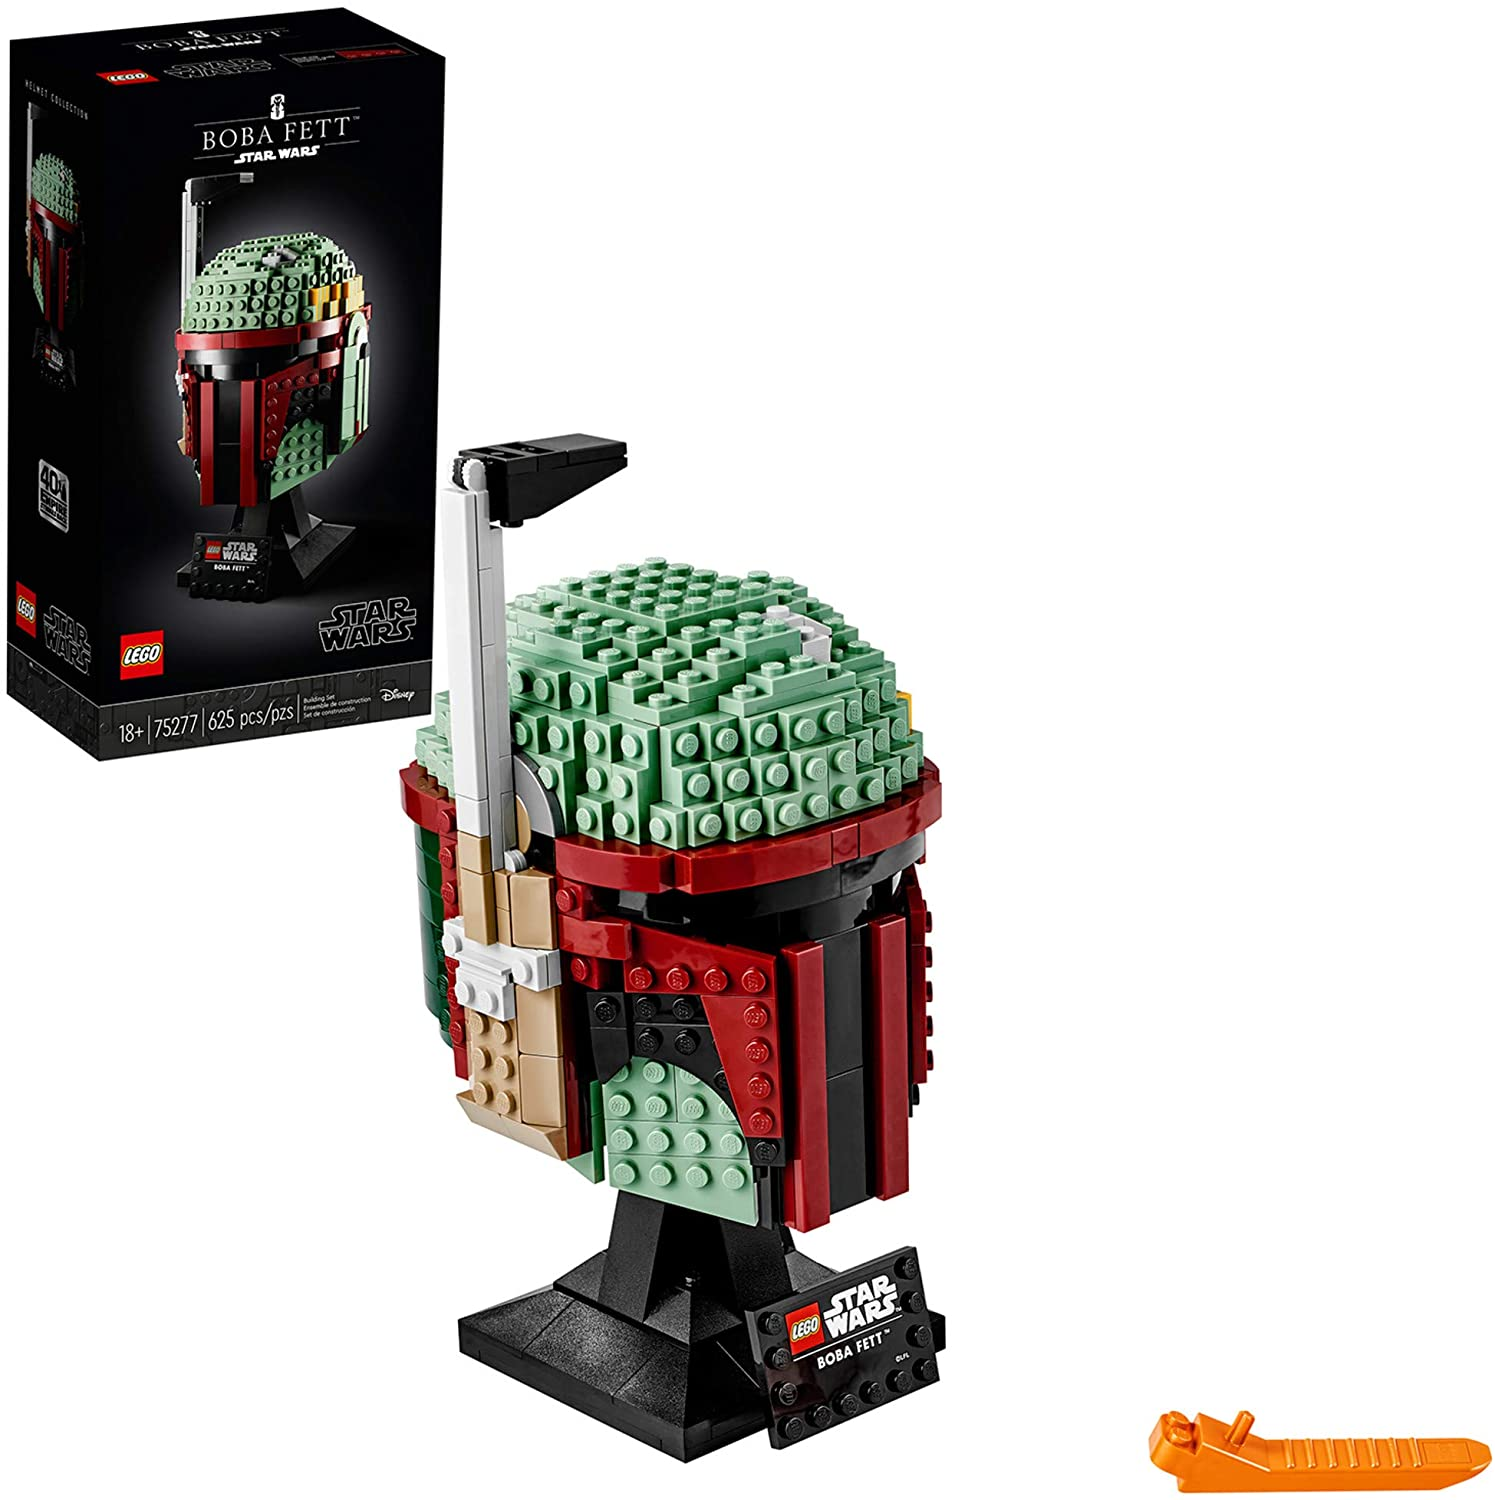 LEGO Star Wars™ Casco de Boba Fett™